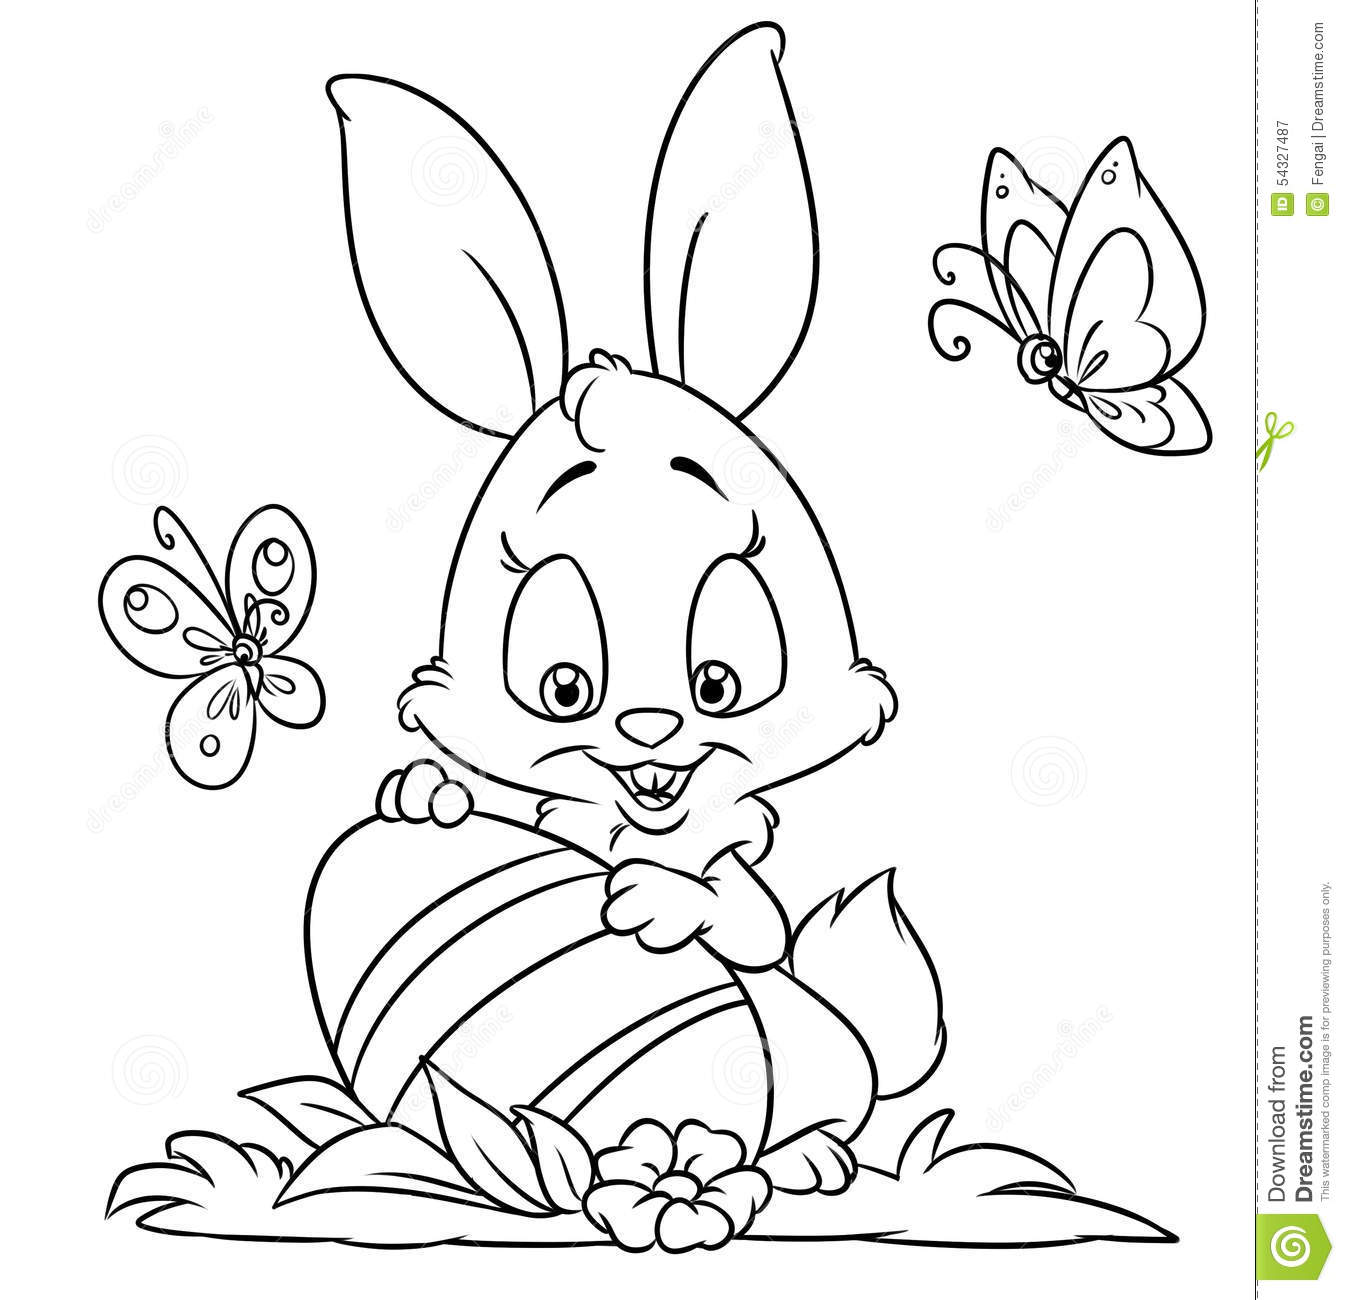 Happy Easter Bunny Coloring Pages Stock Illustration - Illustration ...